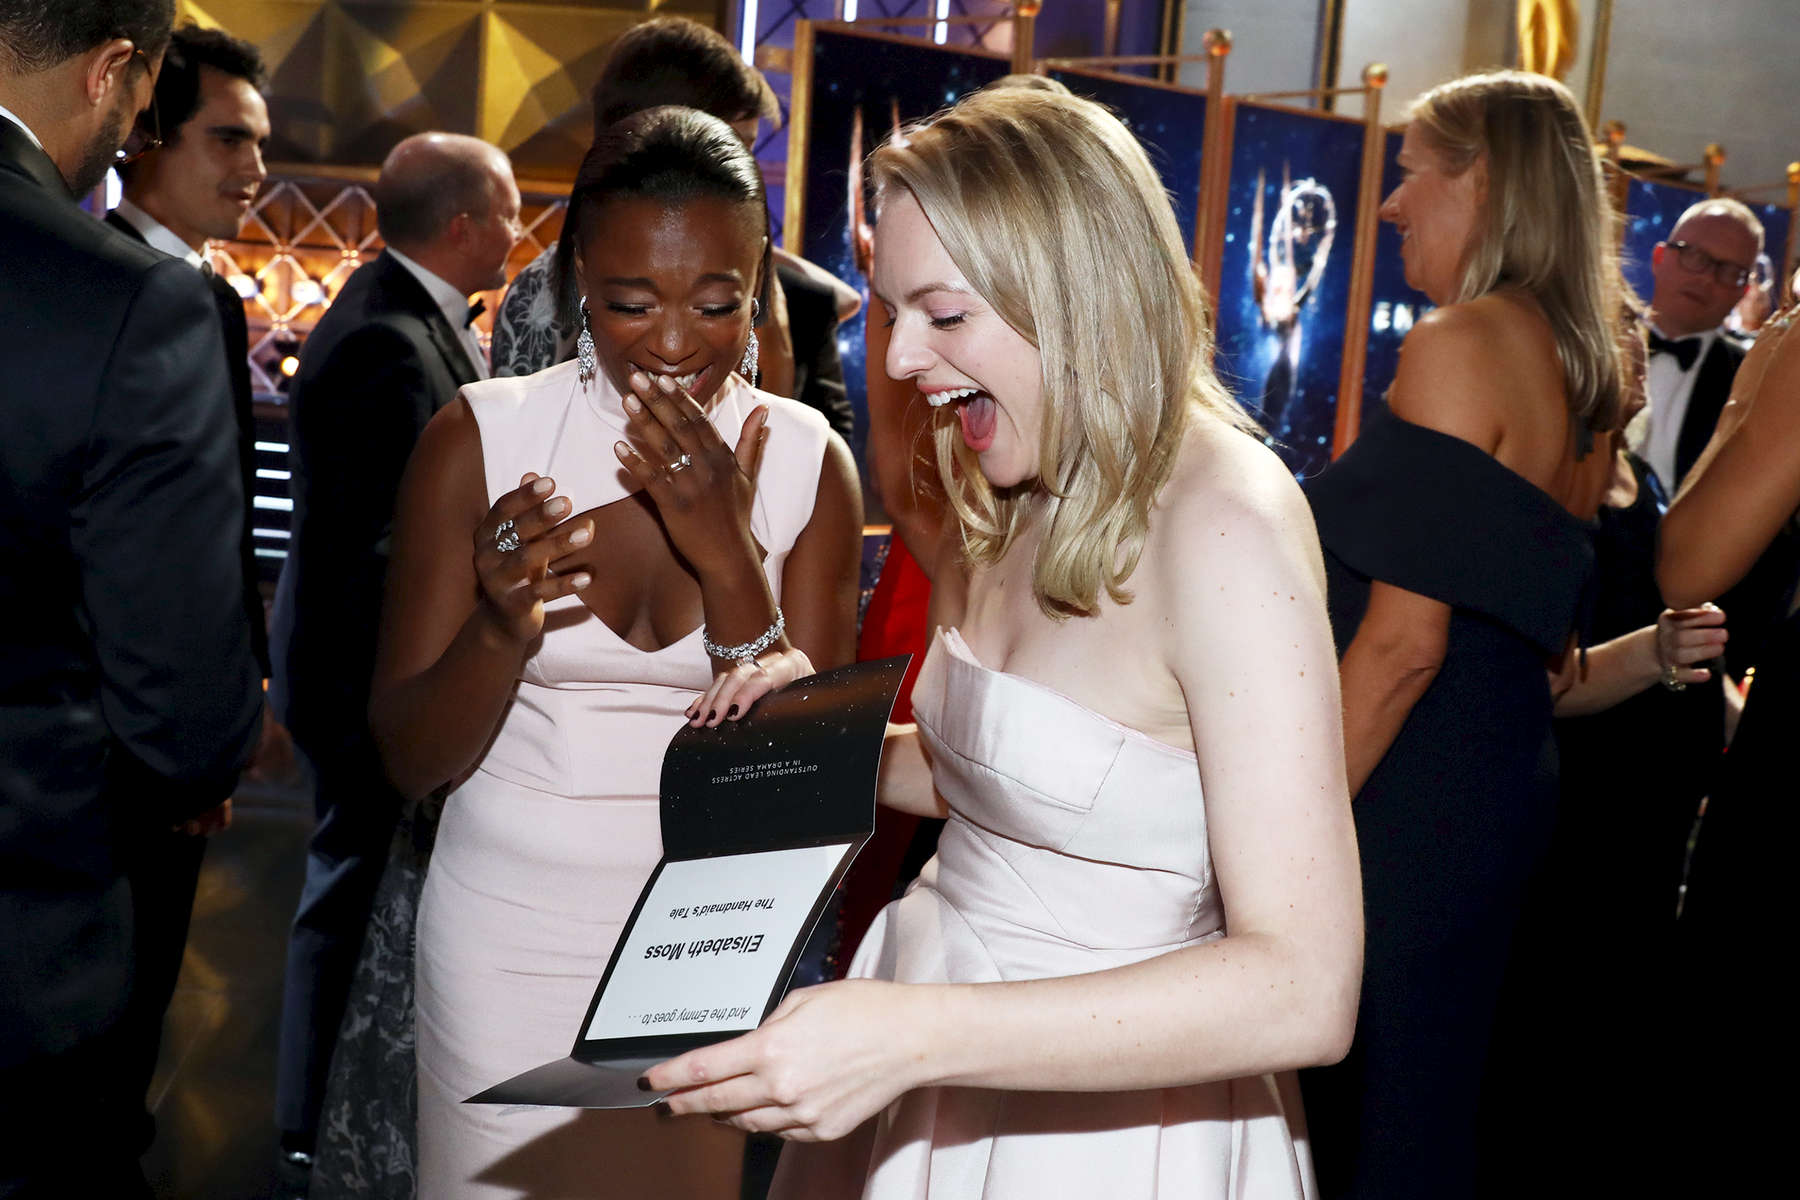 Samira Wiley, left and Elisabeth Moss appears backstage at the 69th Primetime Emmy Awards on Sunday, Sept. 17, 2017, at the Microsoft Theater in Los Angeles. (Photo by Matt Sayles/Invision for the Television Academy/AP Images)